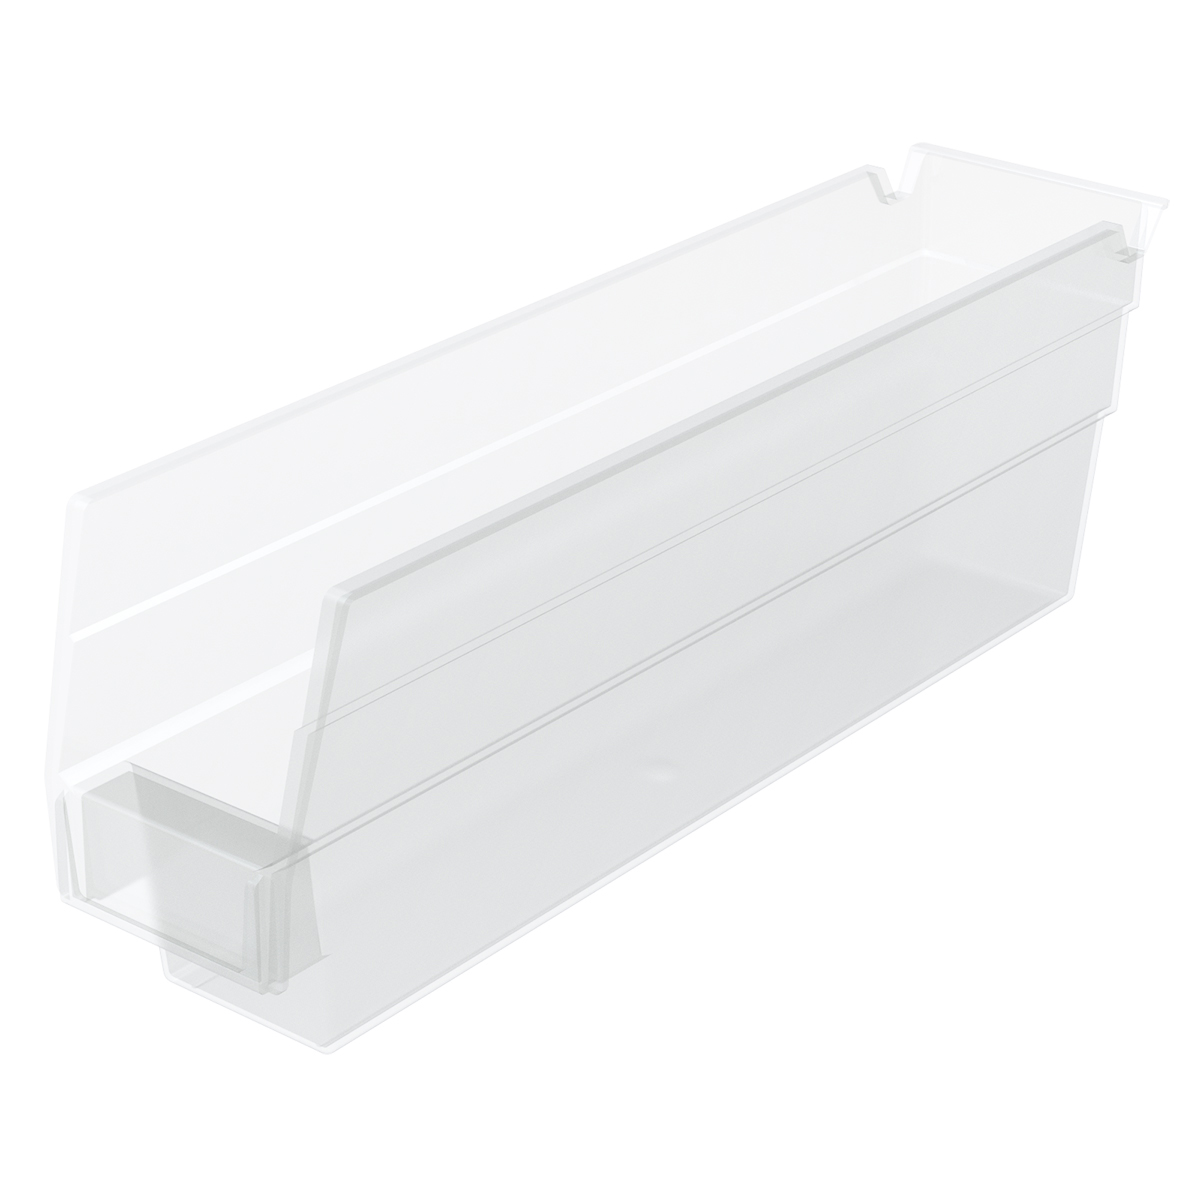 Shelf Bin 11-5/8 x 2-3/4 x 4, Clear (30110SCLAR).  This item sold in carton quantities of 24.